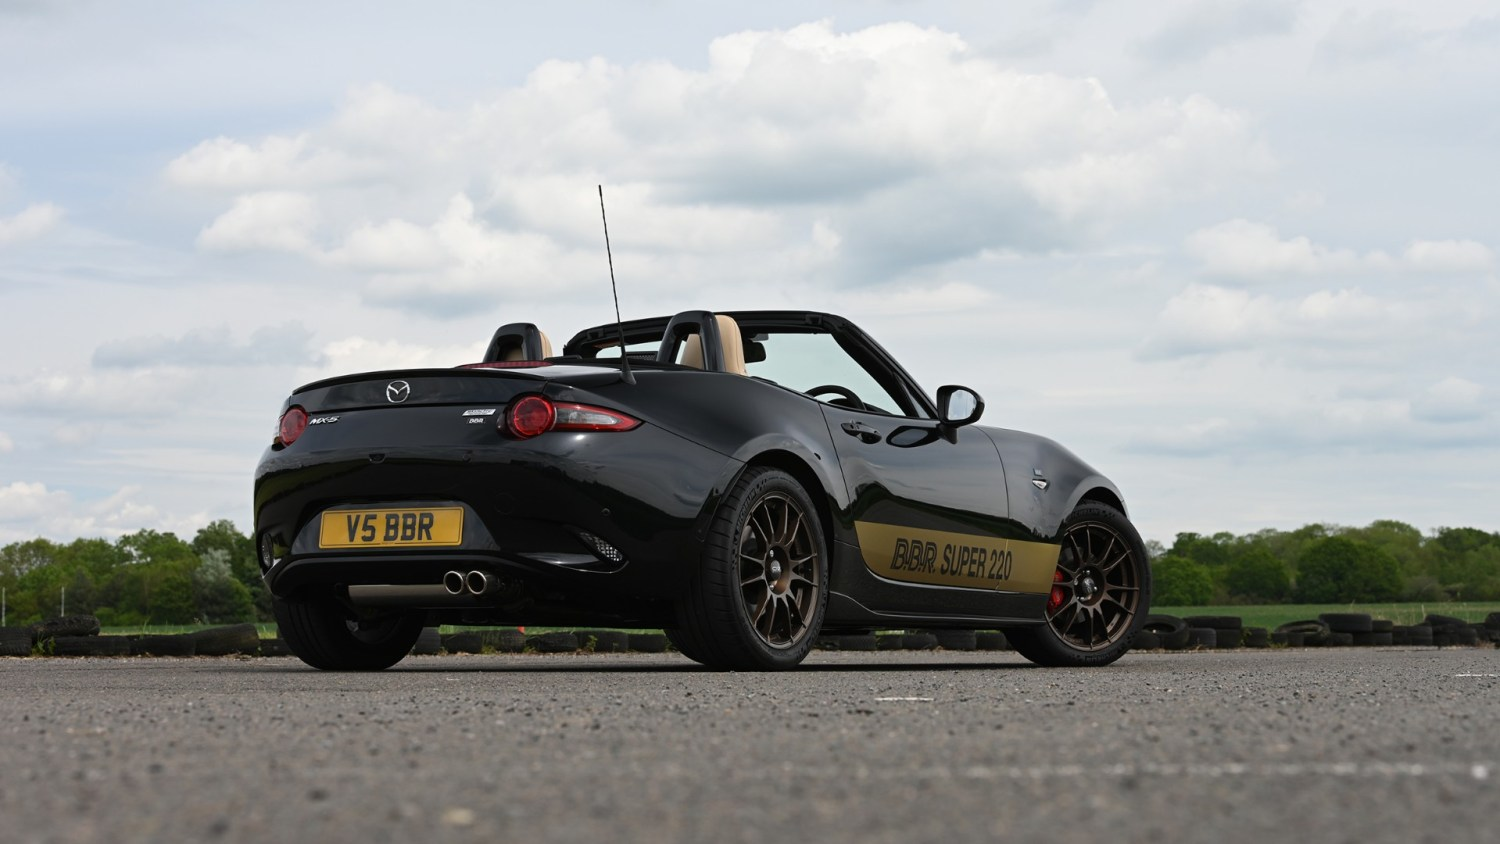 BBR Super 220 Mazda MX-5